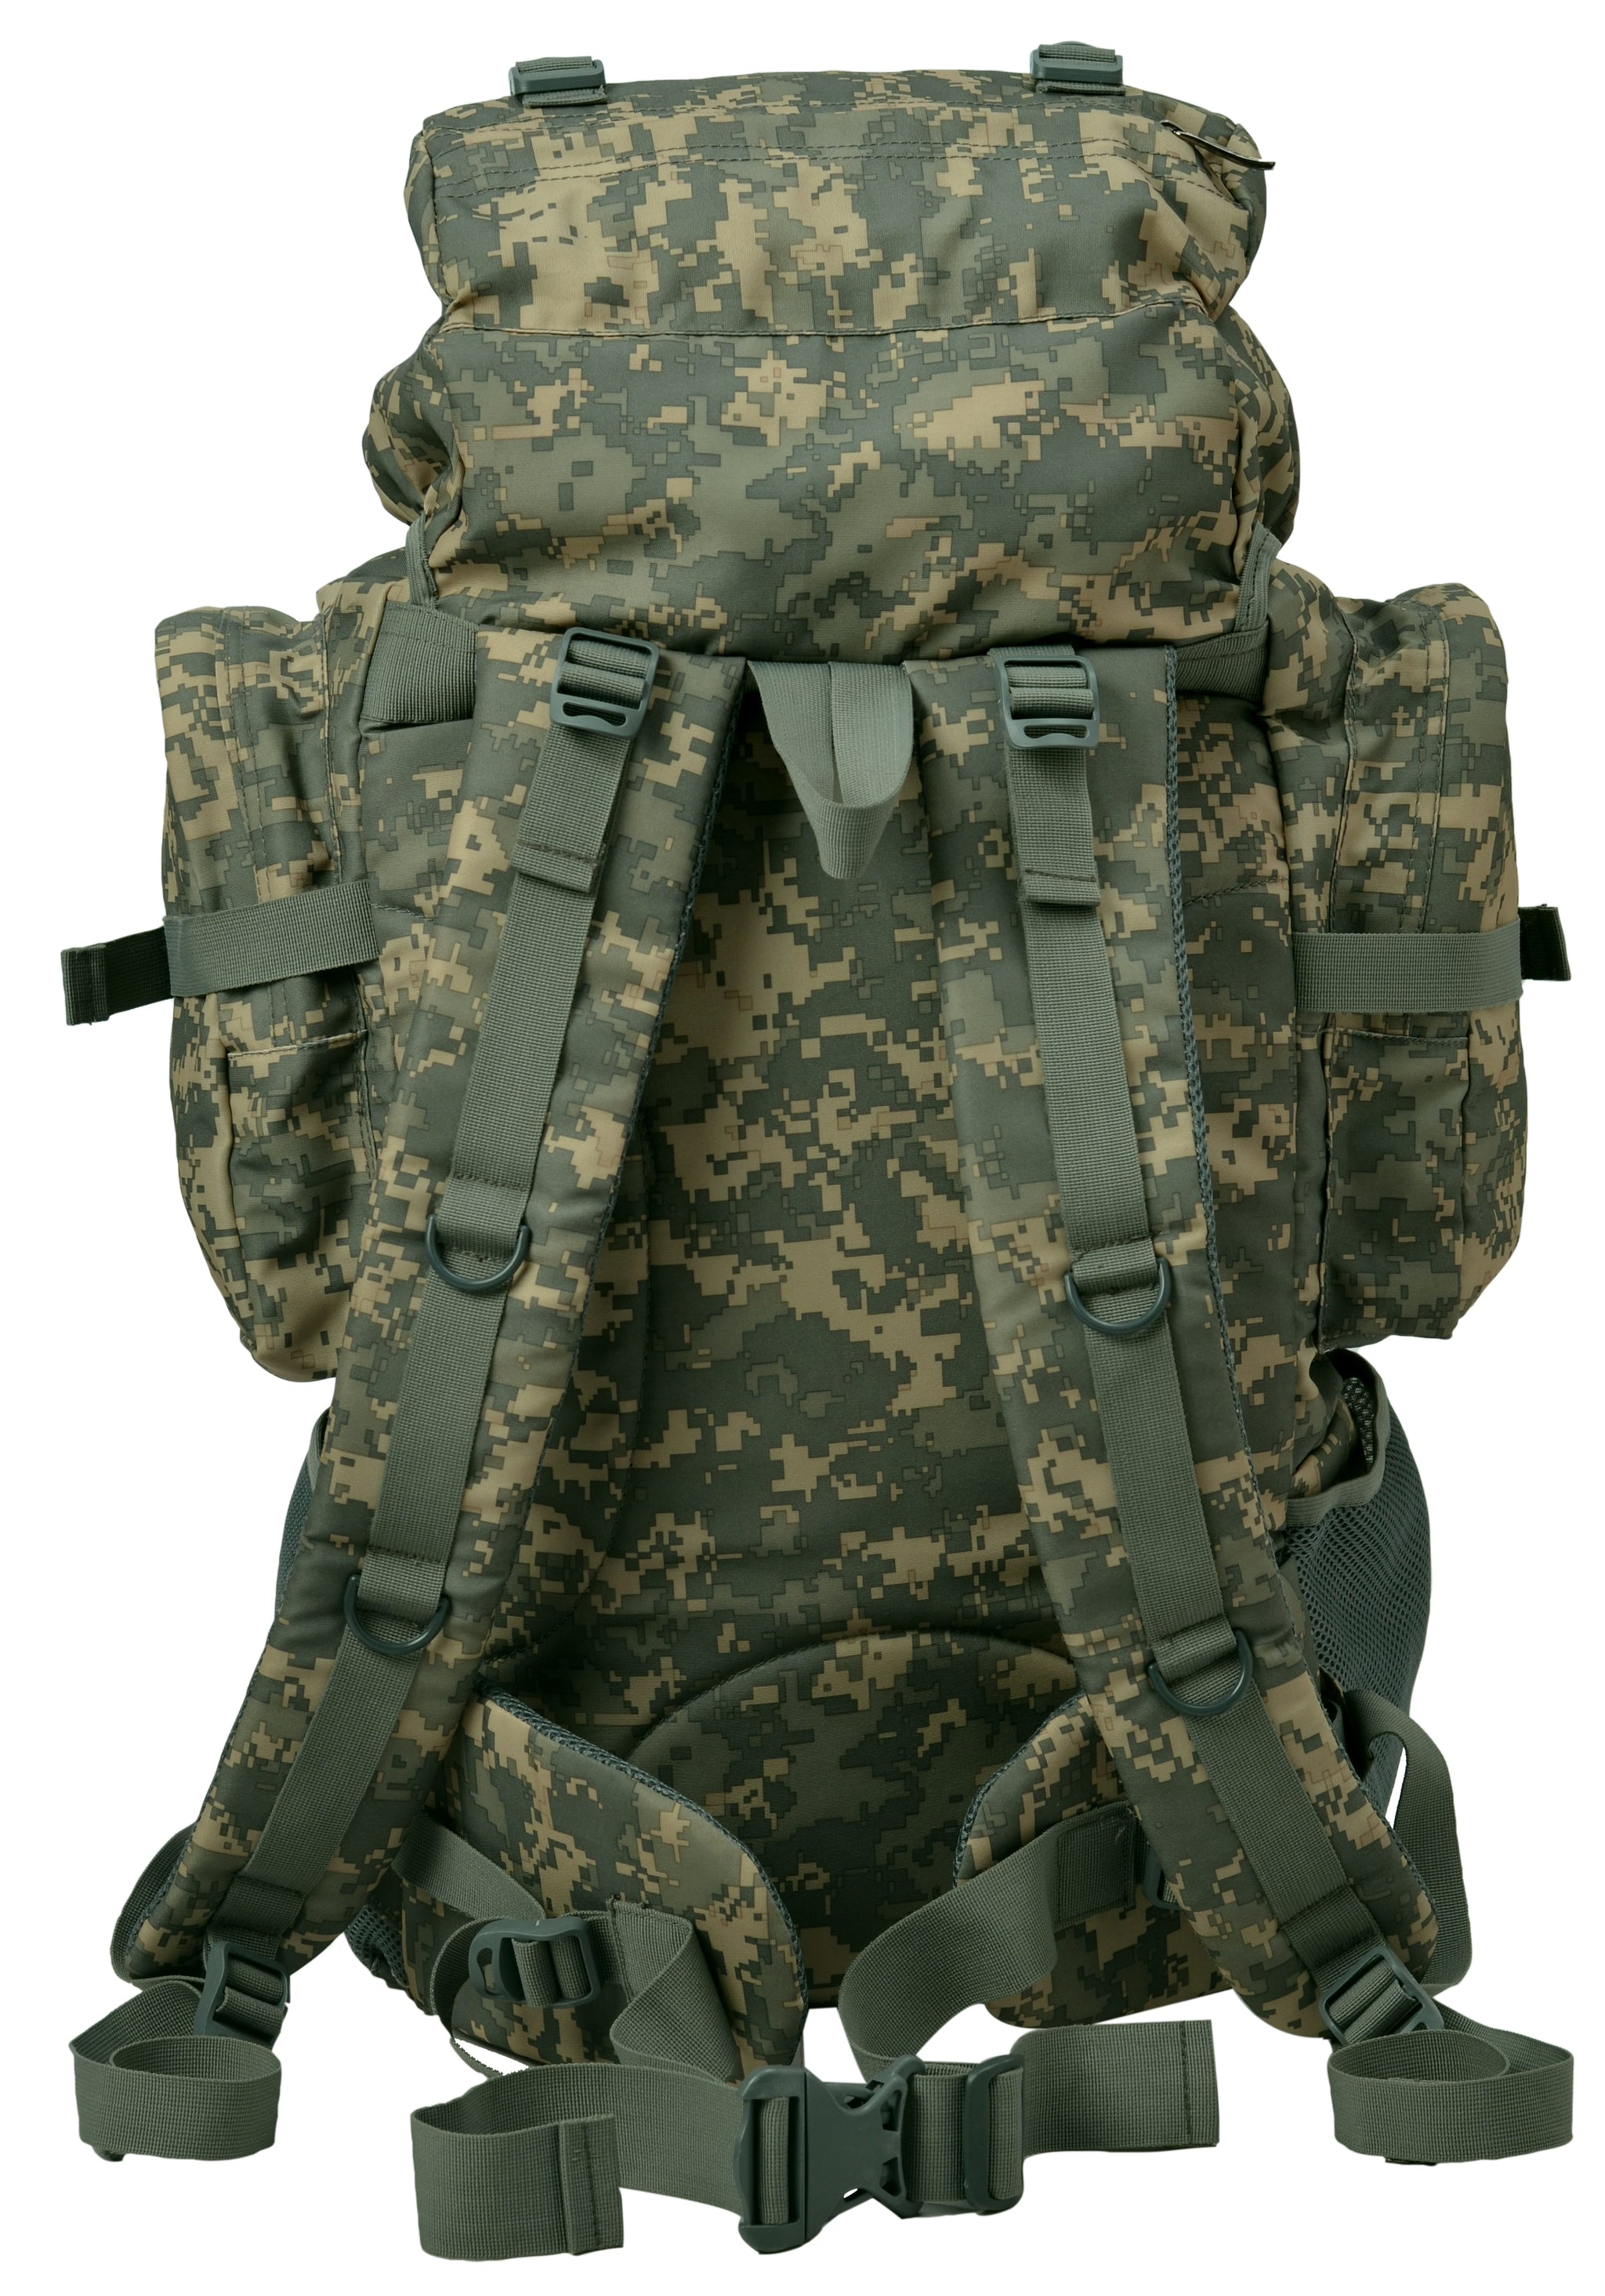 F Gear Military Neutron 50 Ltrs Rucksack (Marpat ACV Digital Camo) 2797